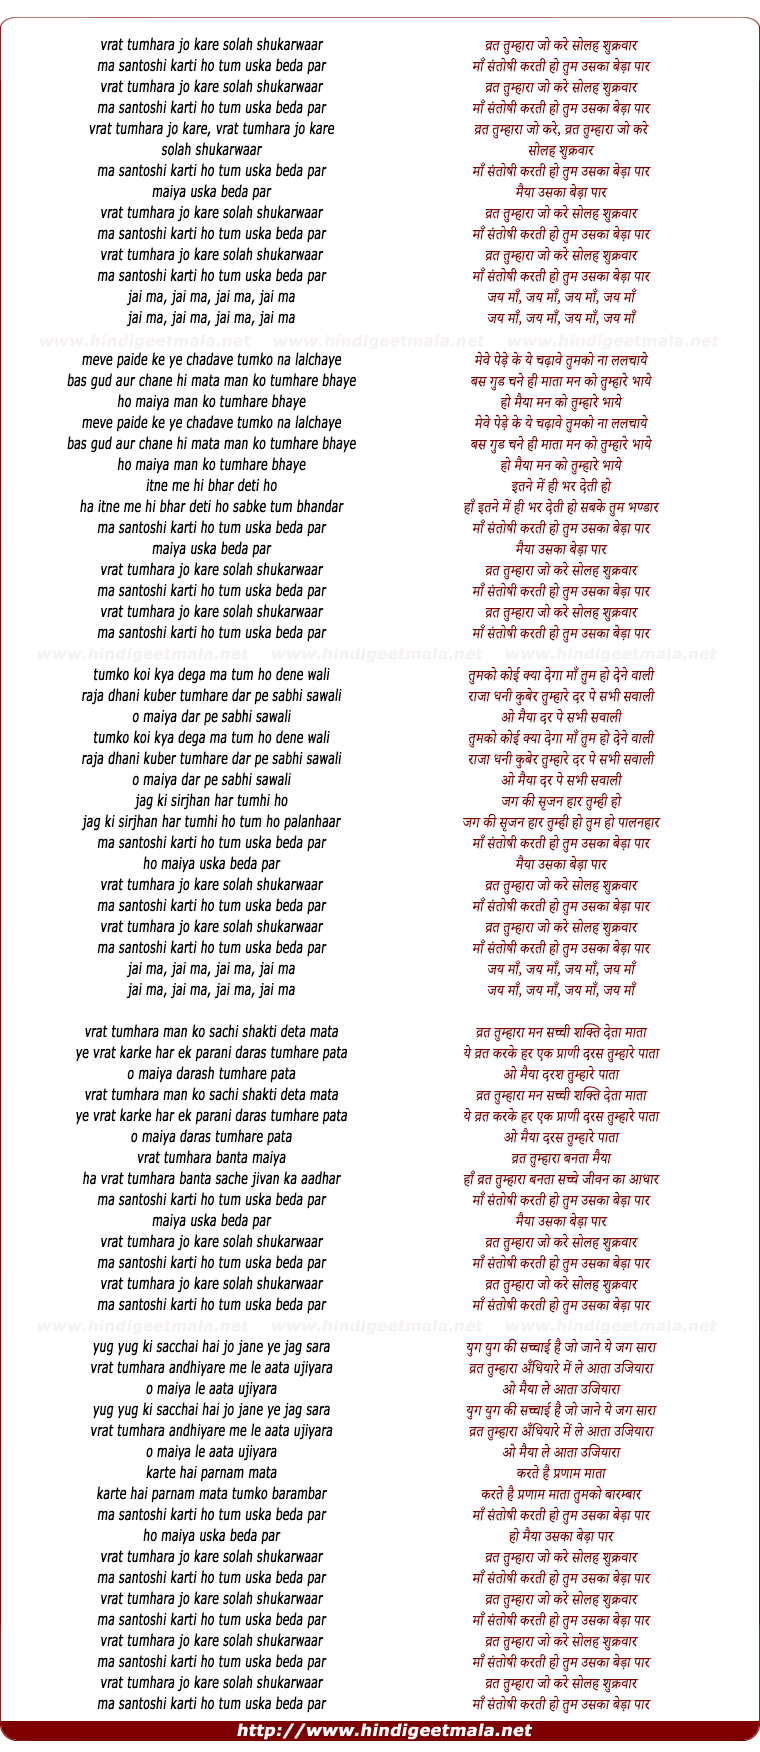 lyrics of song Vrat Tumhara Jo Kare Solah Sukarwar